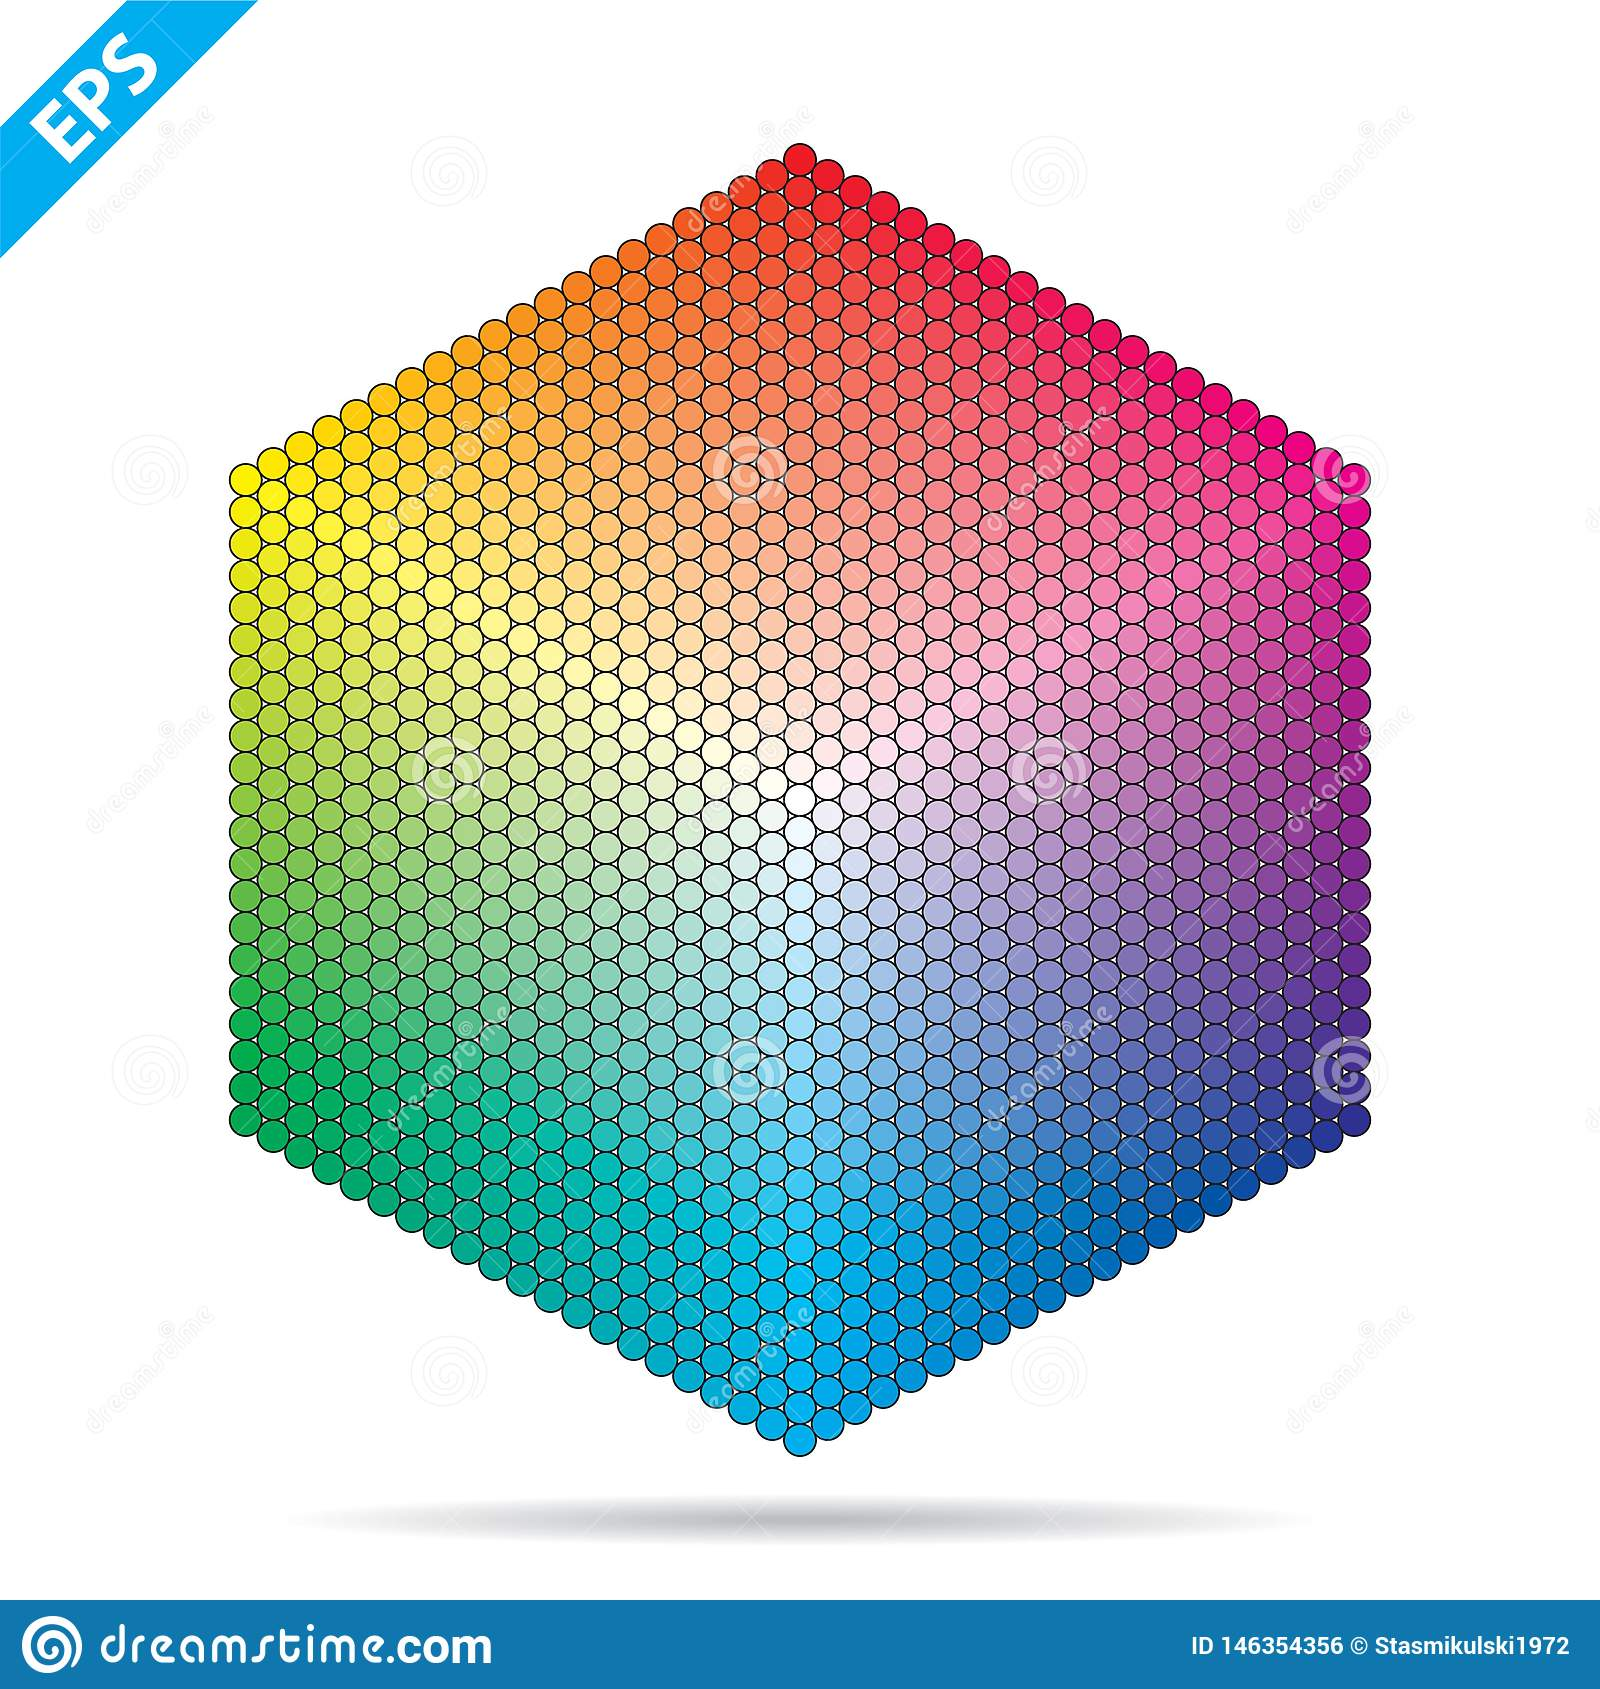 Vector color palette. 1261 different colors in small circles in a shape of hexagon.